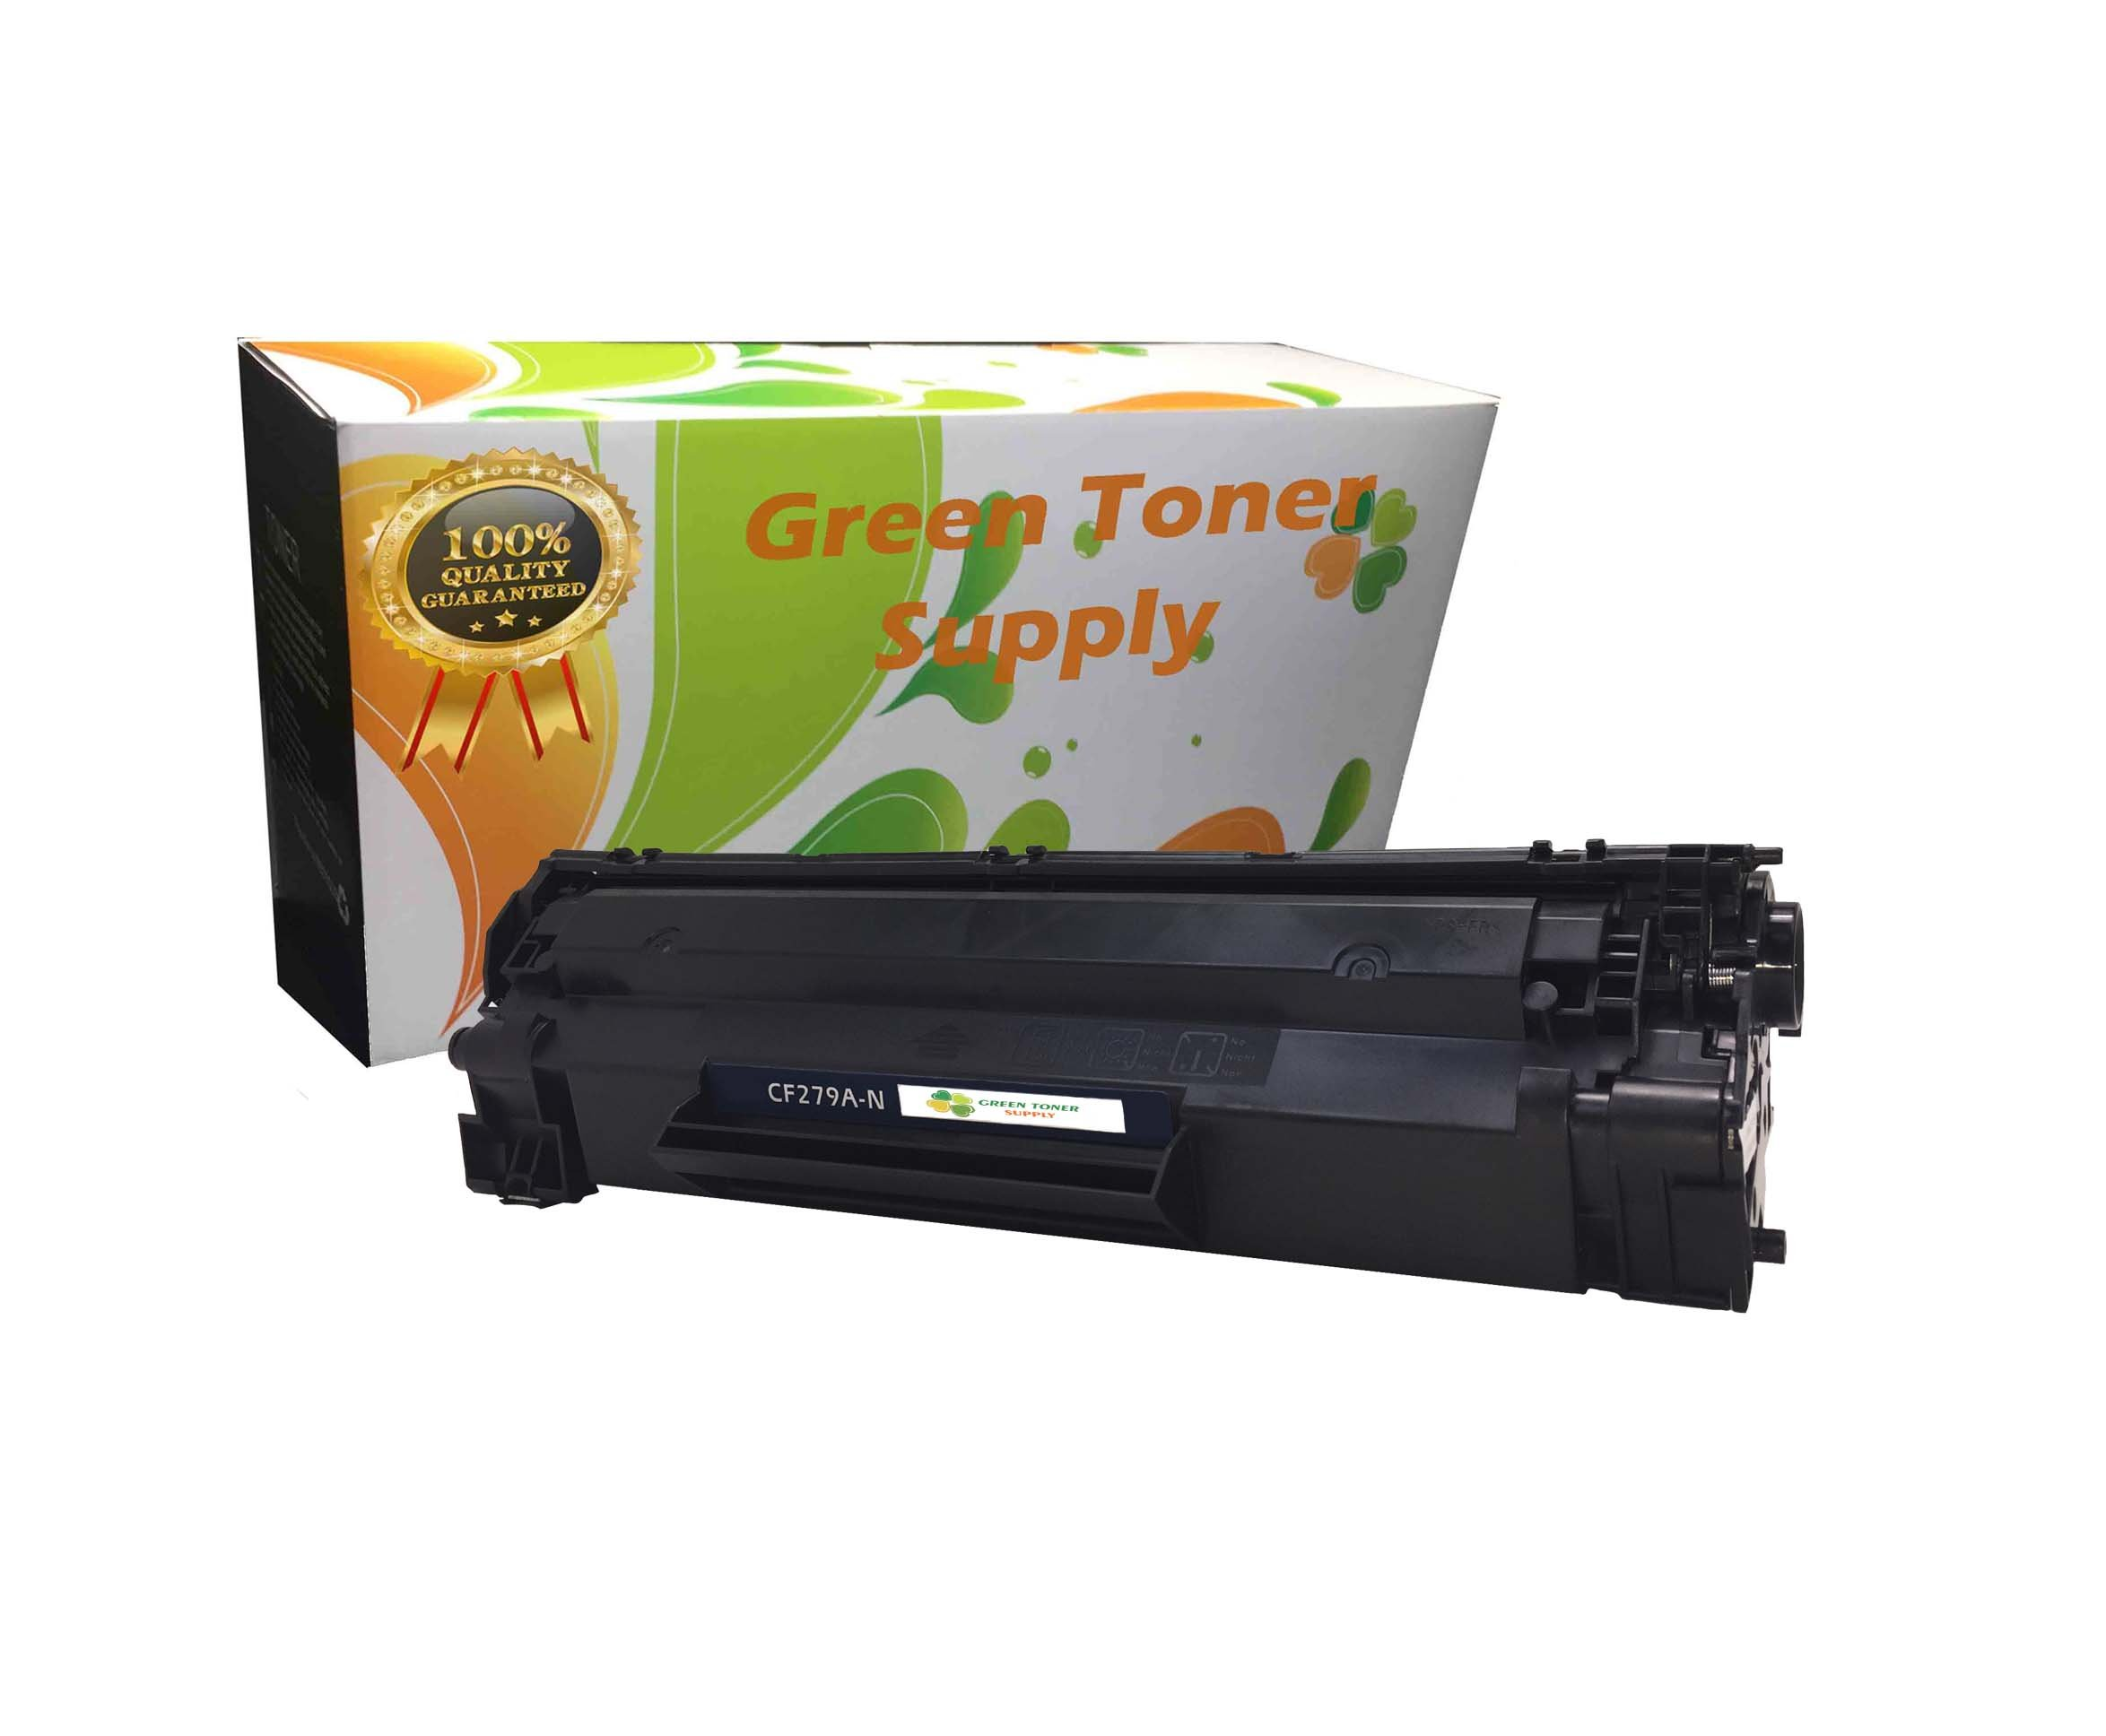 Green Toner Supply New Compatible Samsung MLT-D103L MLT-D103S Black High Yield LaserJet Toner Cartridges, 1 Pack